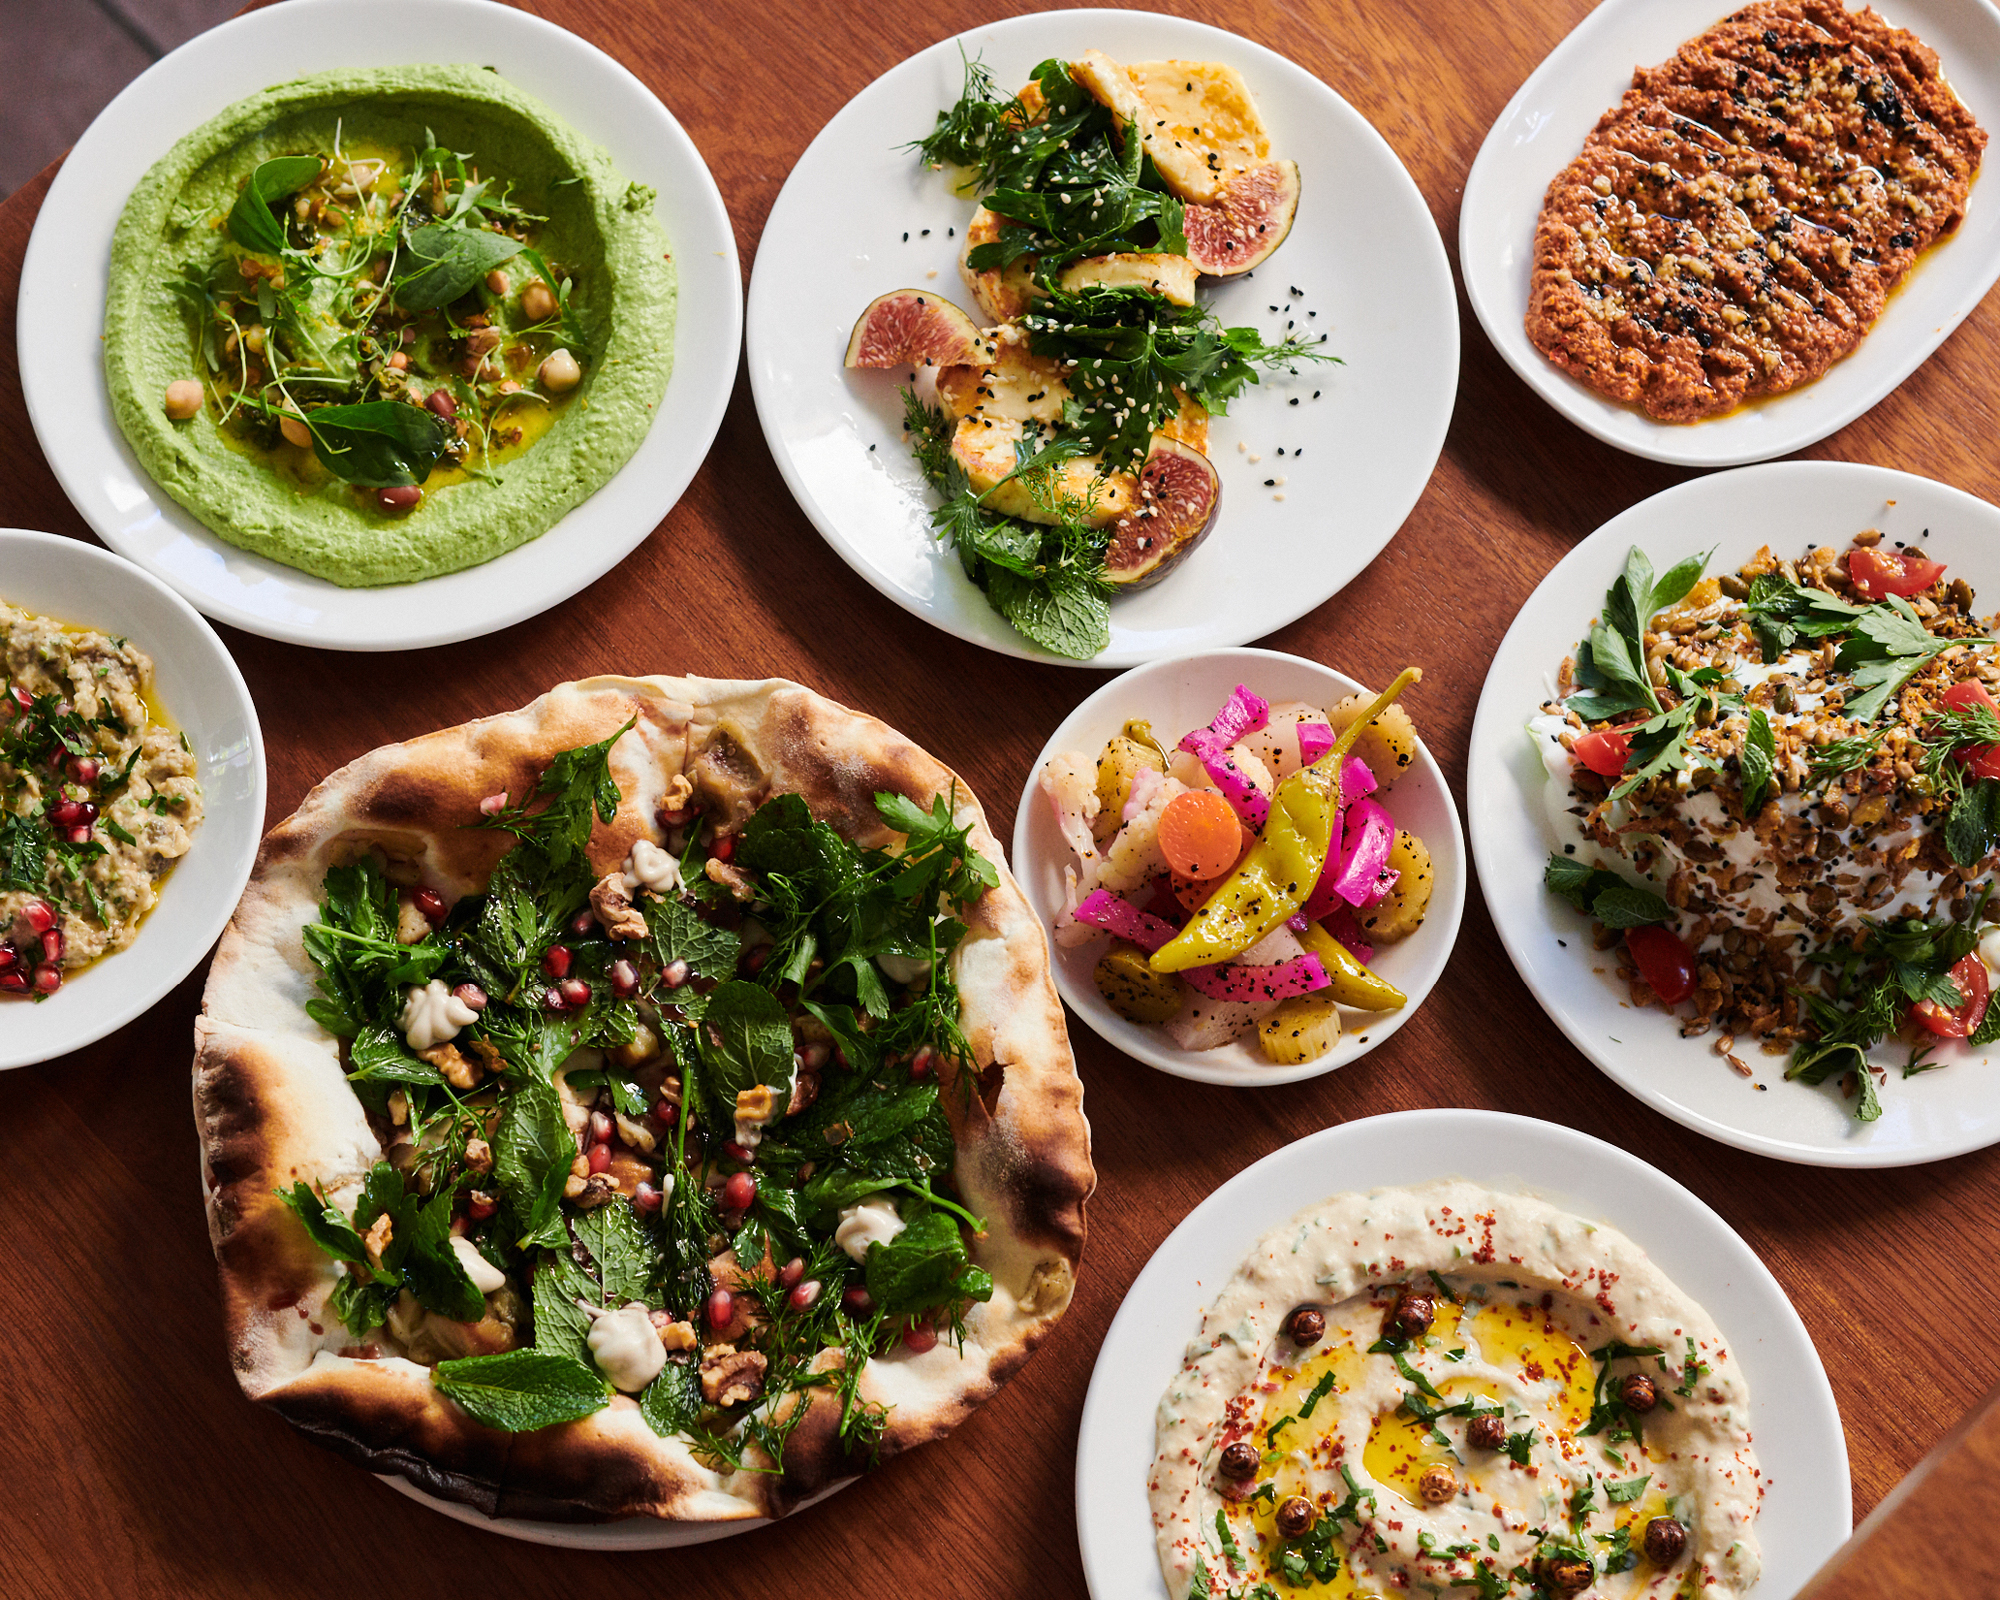 A selection of Levantine delights at Arabica KX